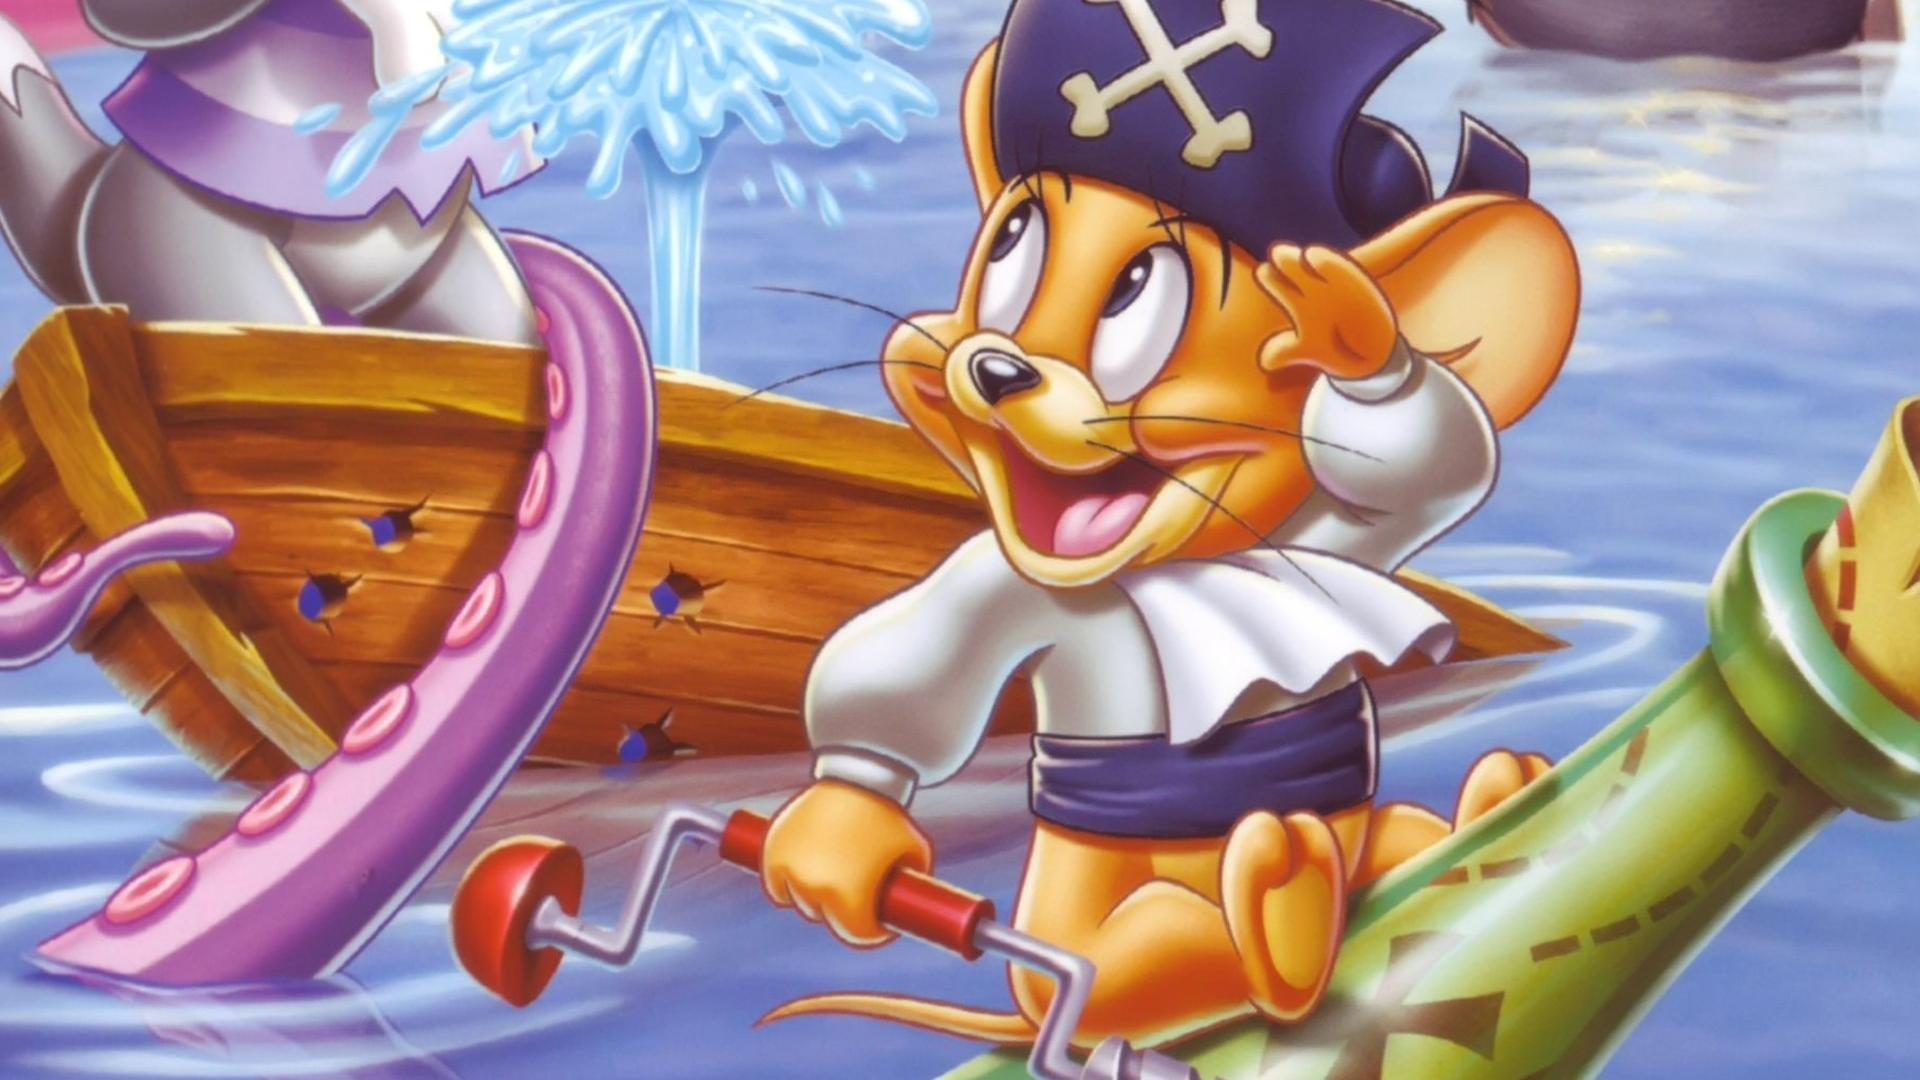 hd-jerry-mouse-wallpaper-wpc5805789